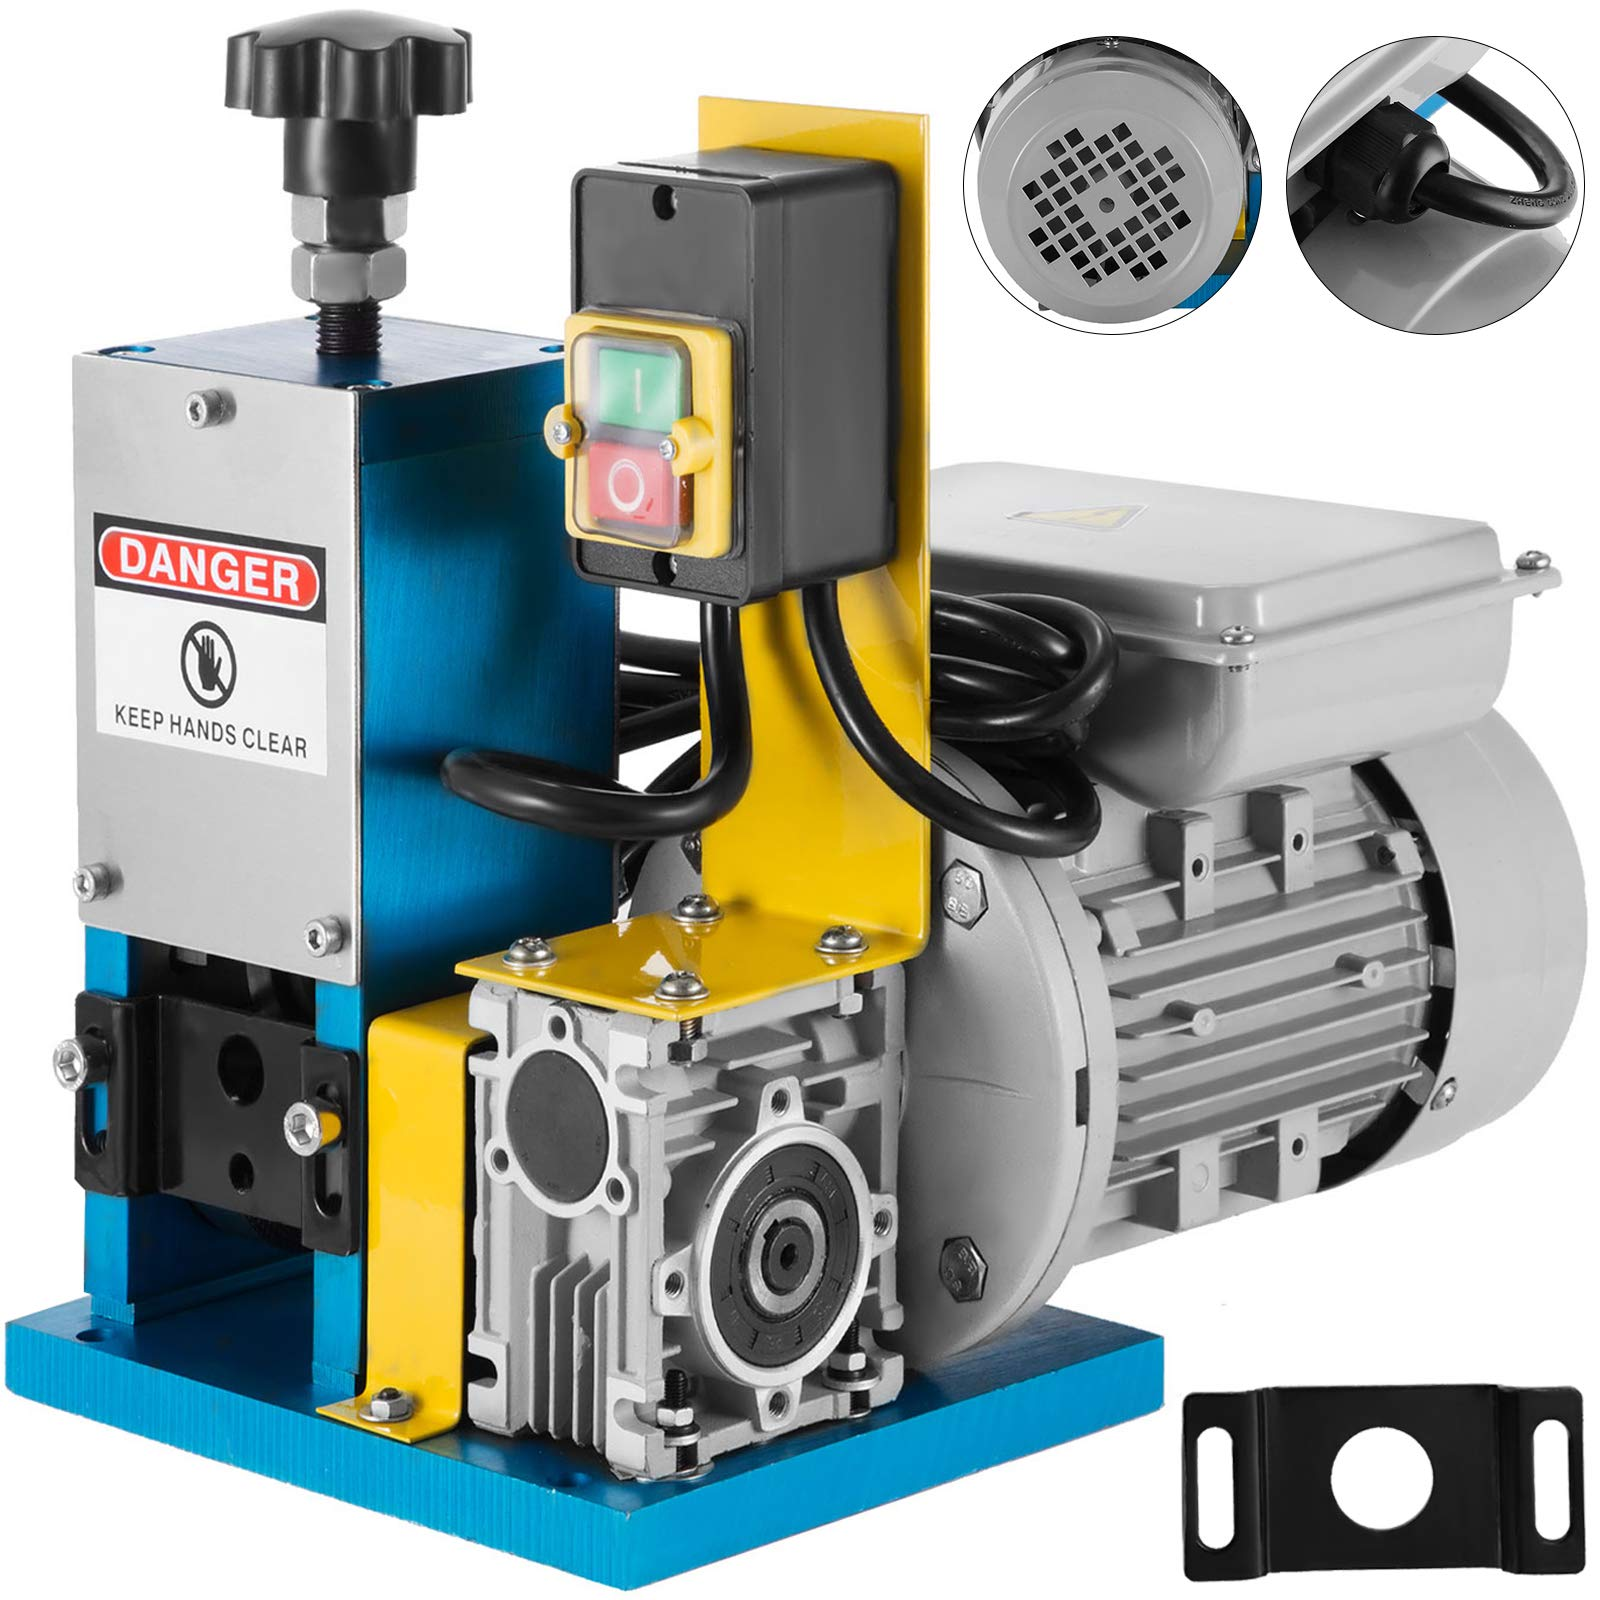 Happybuy Cable Wire Stripping Machine 1.5mm-25mm Wire Stripping Machine 1 Channels Wire Stripping Machine Tool Manual Hand Cranked Industrial Wire Stripping Recycle (Blue) by Happybuy